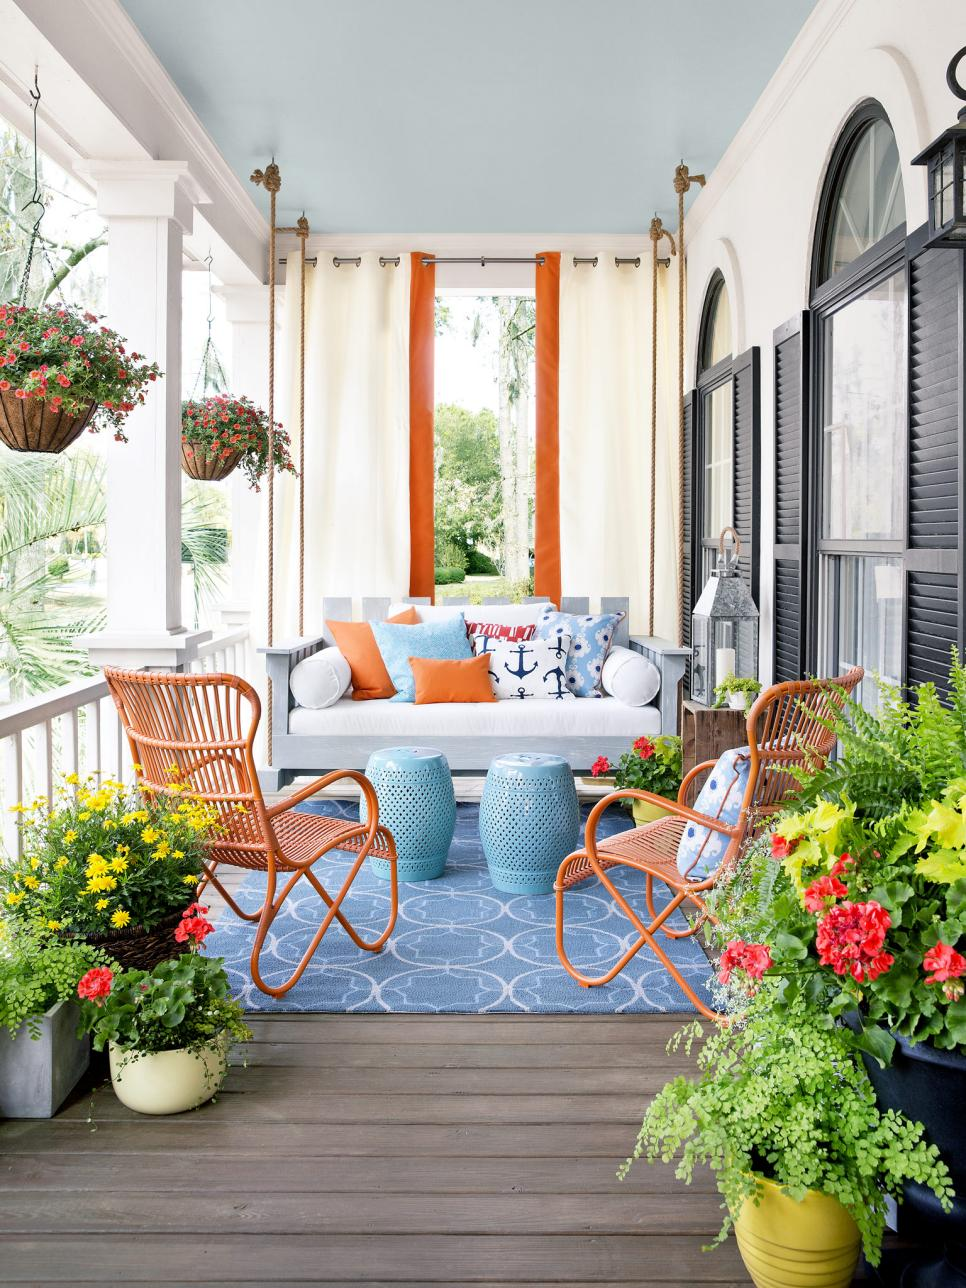 Porch design and decorating ideas hgtv for Patio deck decorating ideas